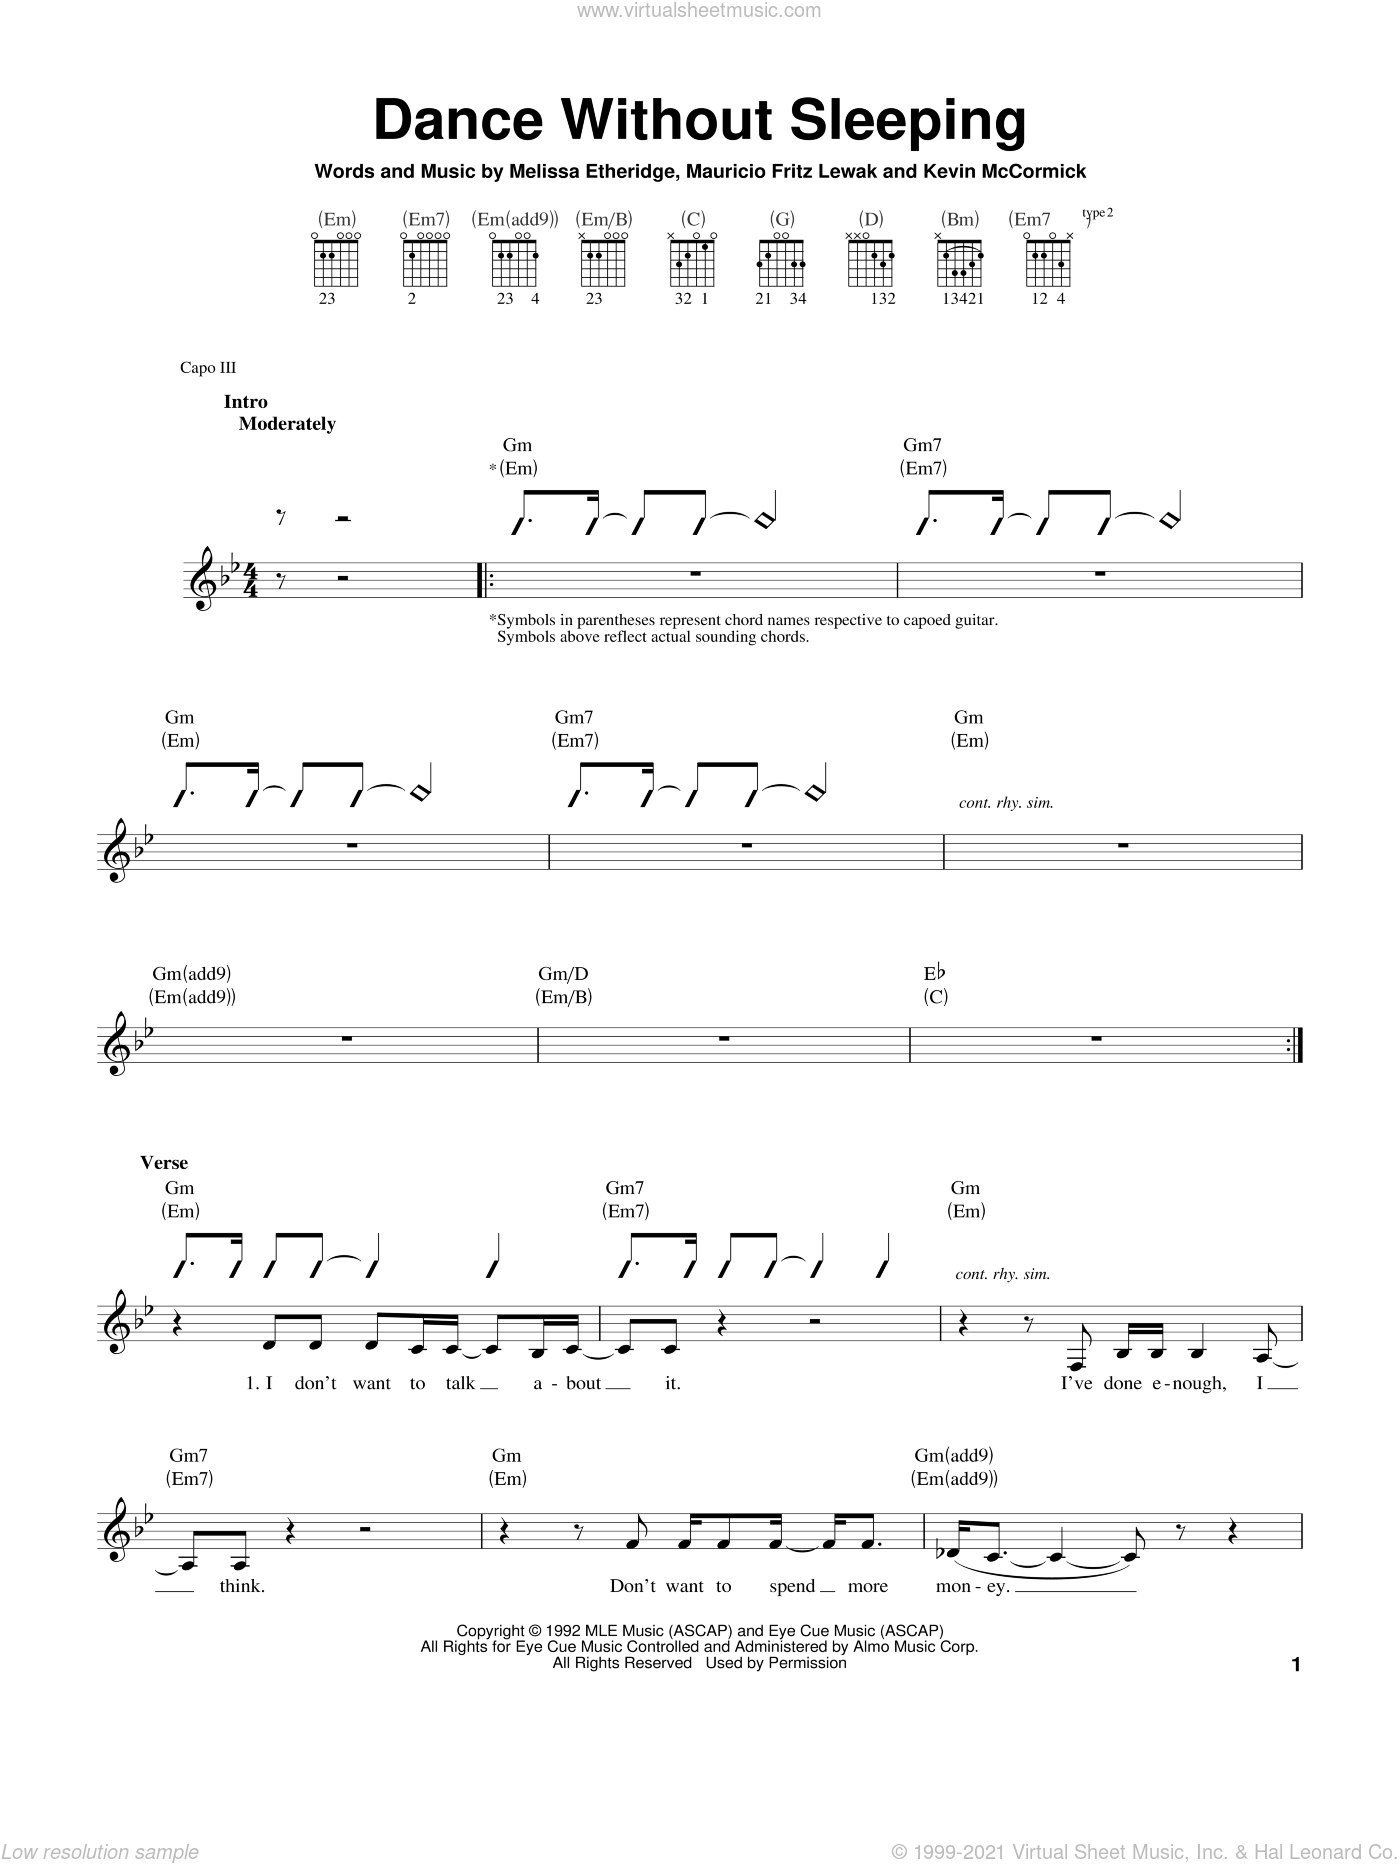 Dance Without Sleeping sheet music for guitar solo (chords) by Melissa Etheridge, Kevin McCormick and Mauricio Fritz Lewak, easy guitar (chords). Score Image Preview.